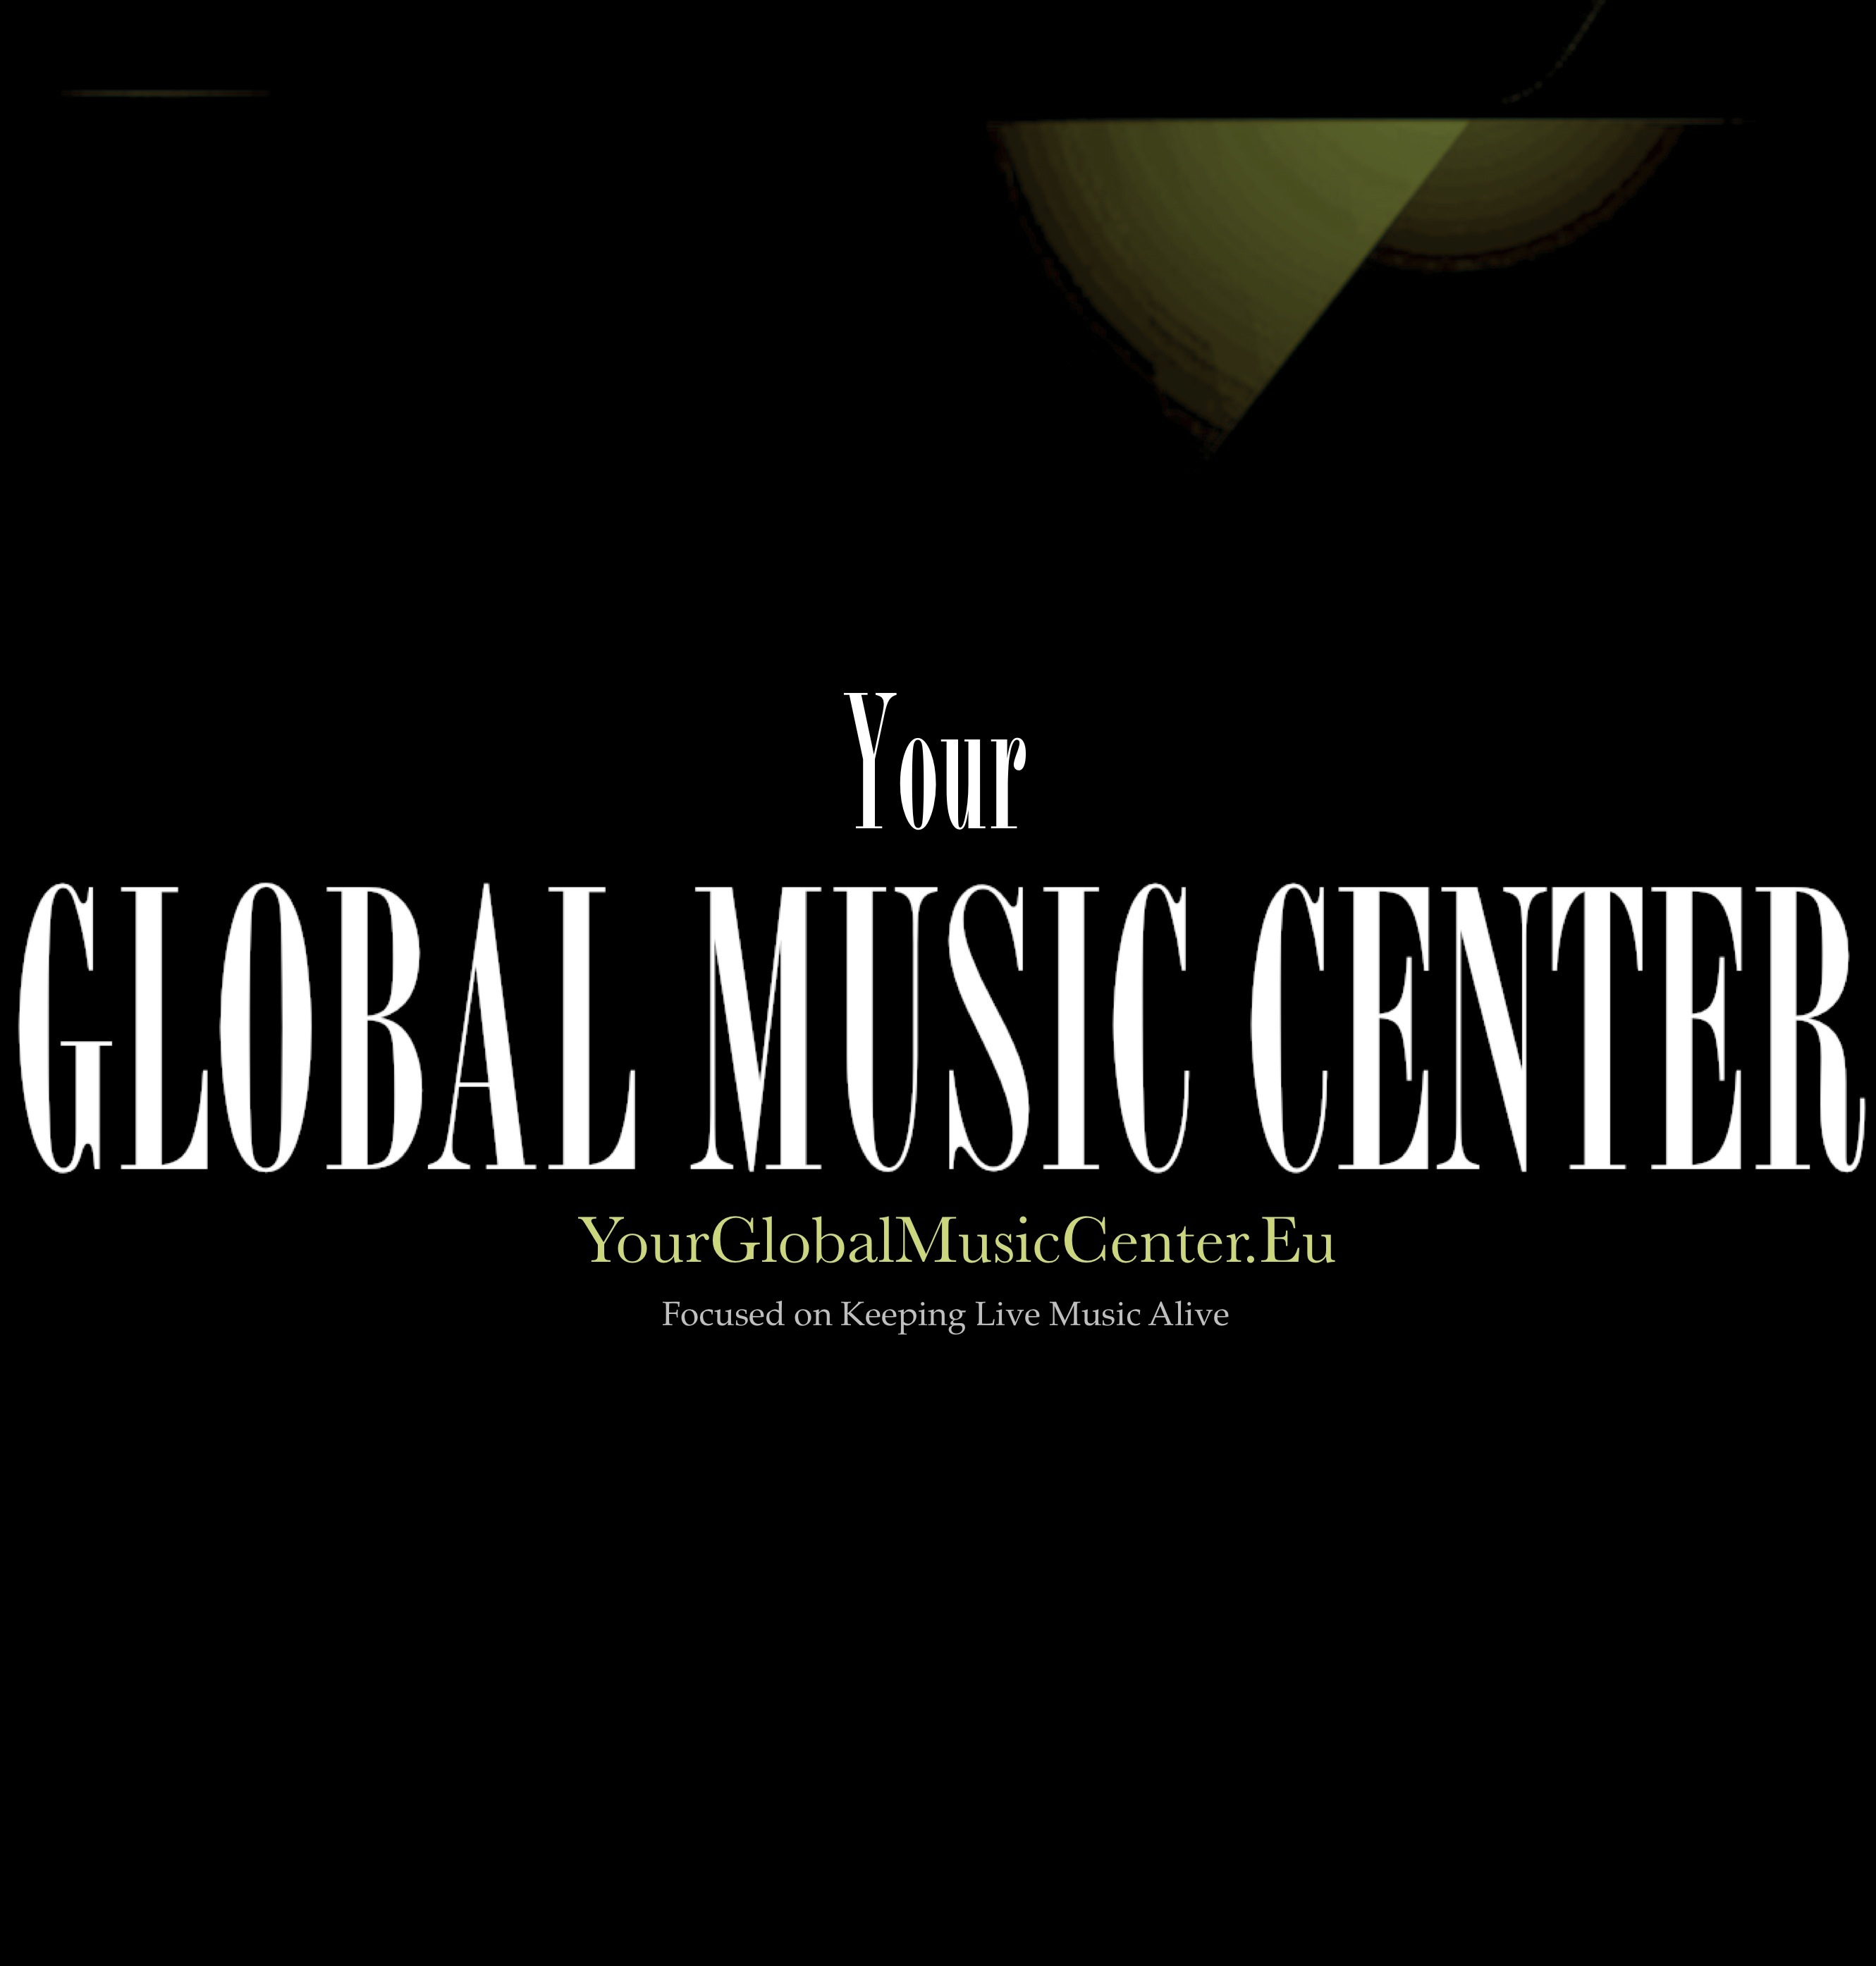 yourglobalmusiccenter.eu photo1A_2_4.jpg